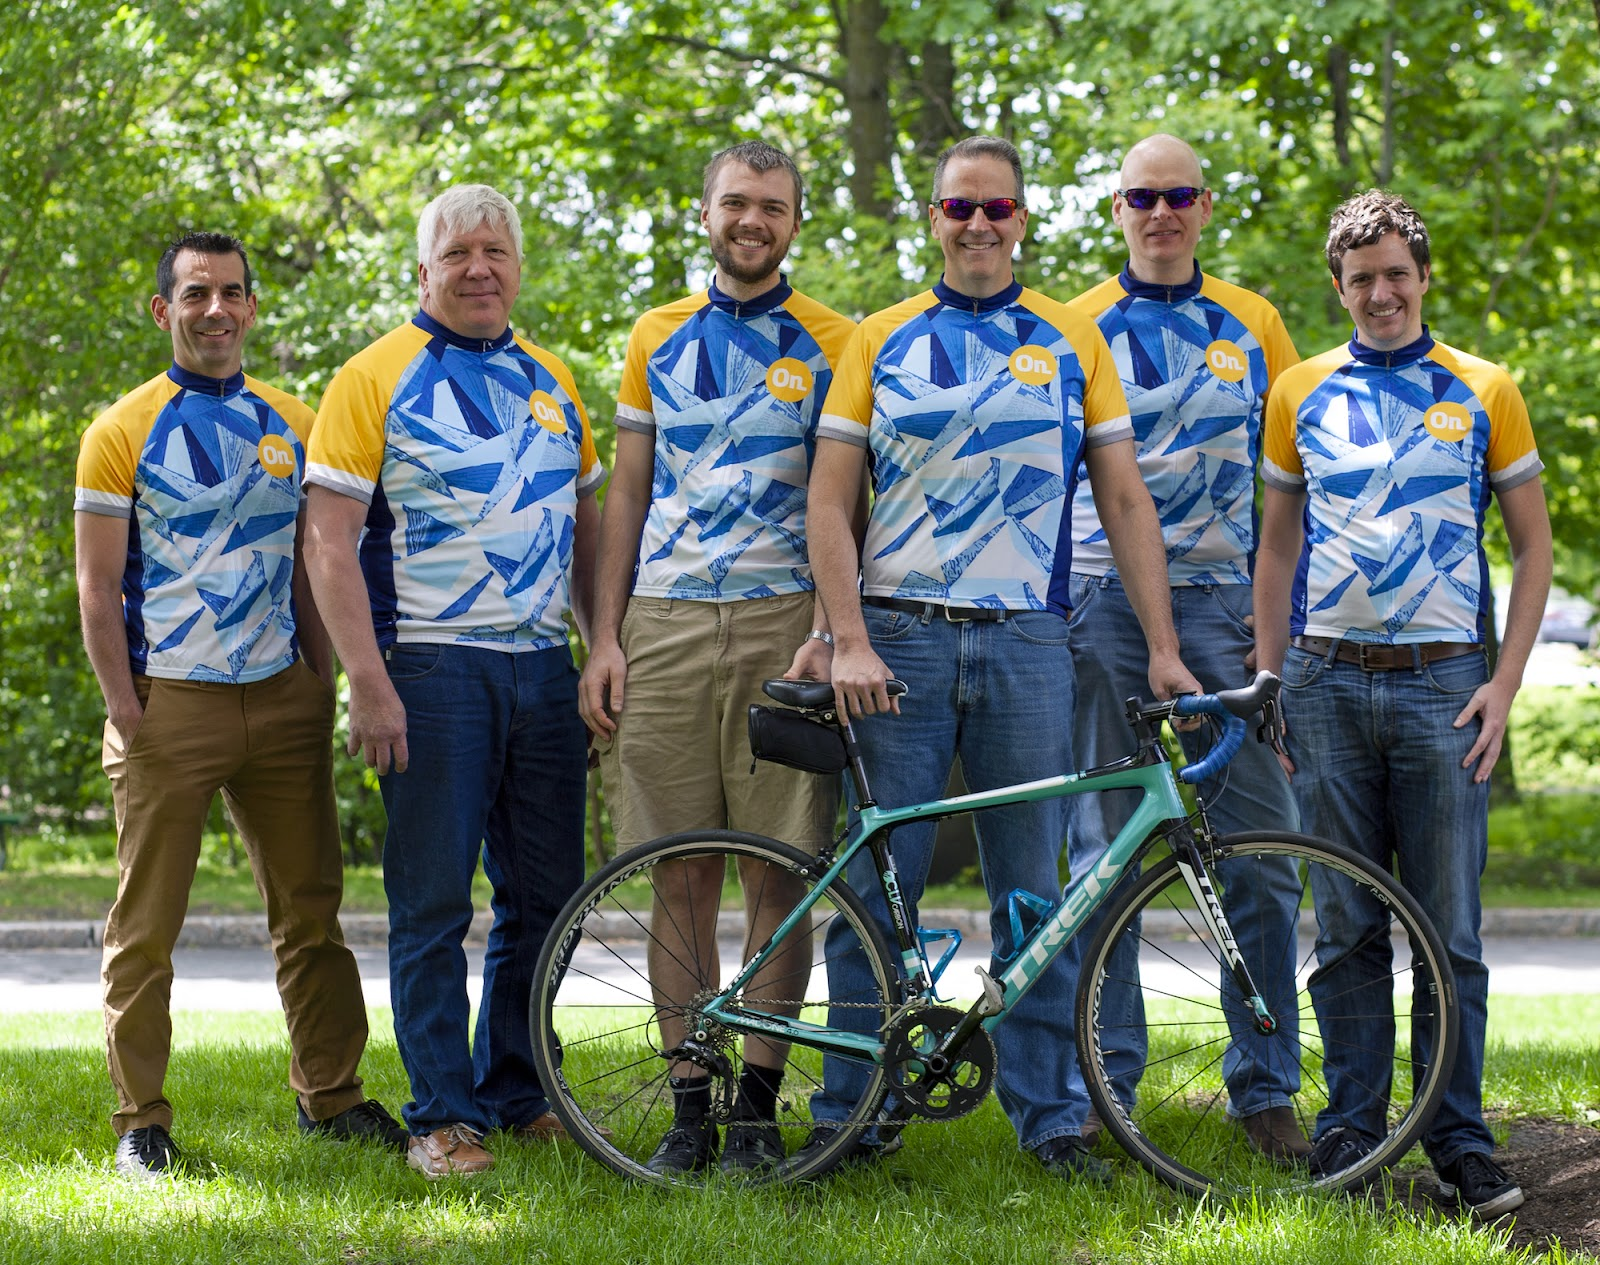 Group photo of Team Onshape, which is cycling in the Pan-Mass Challenge ride this August to raise funds for cancer research.